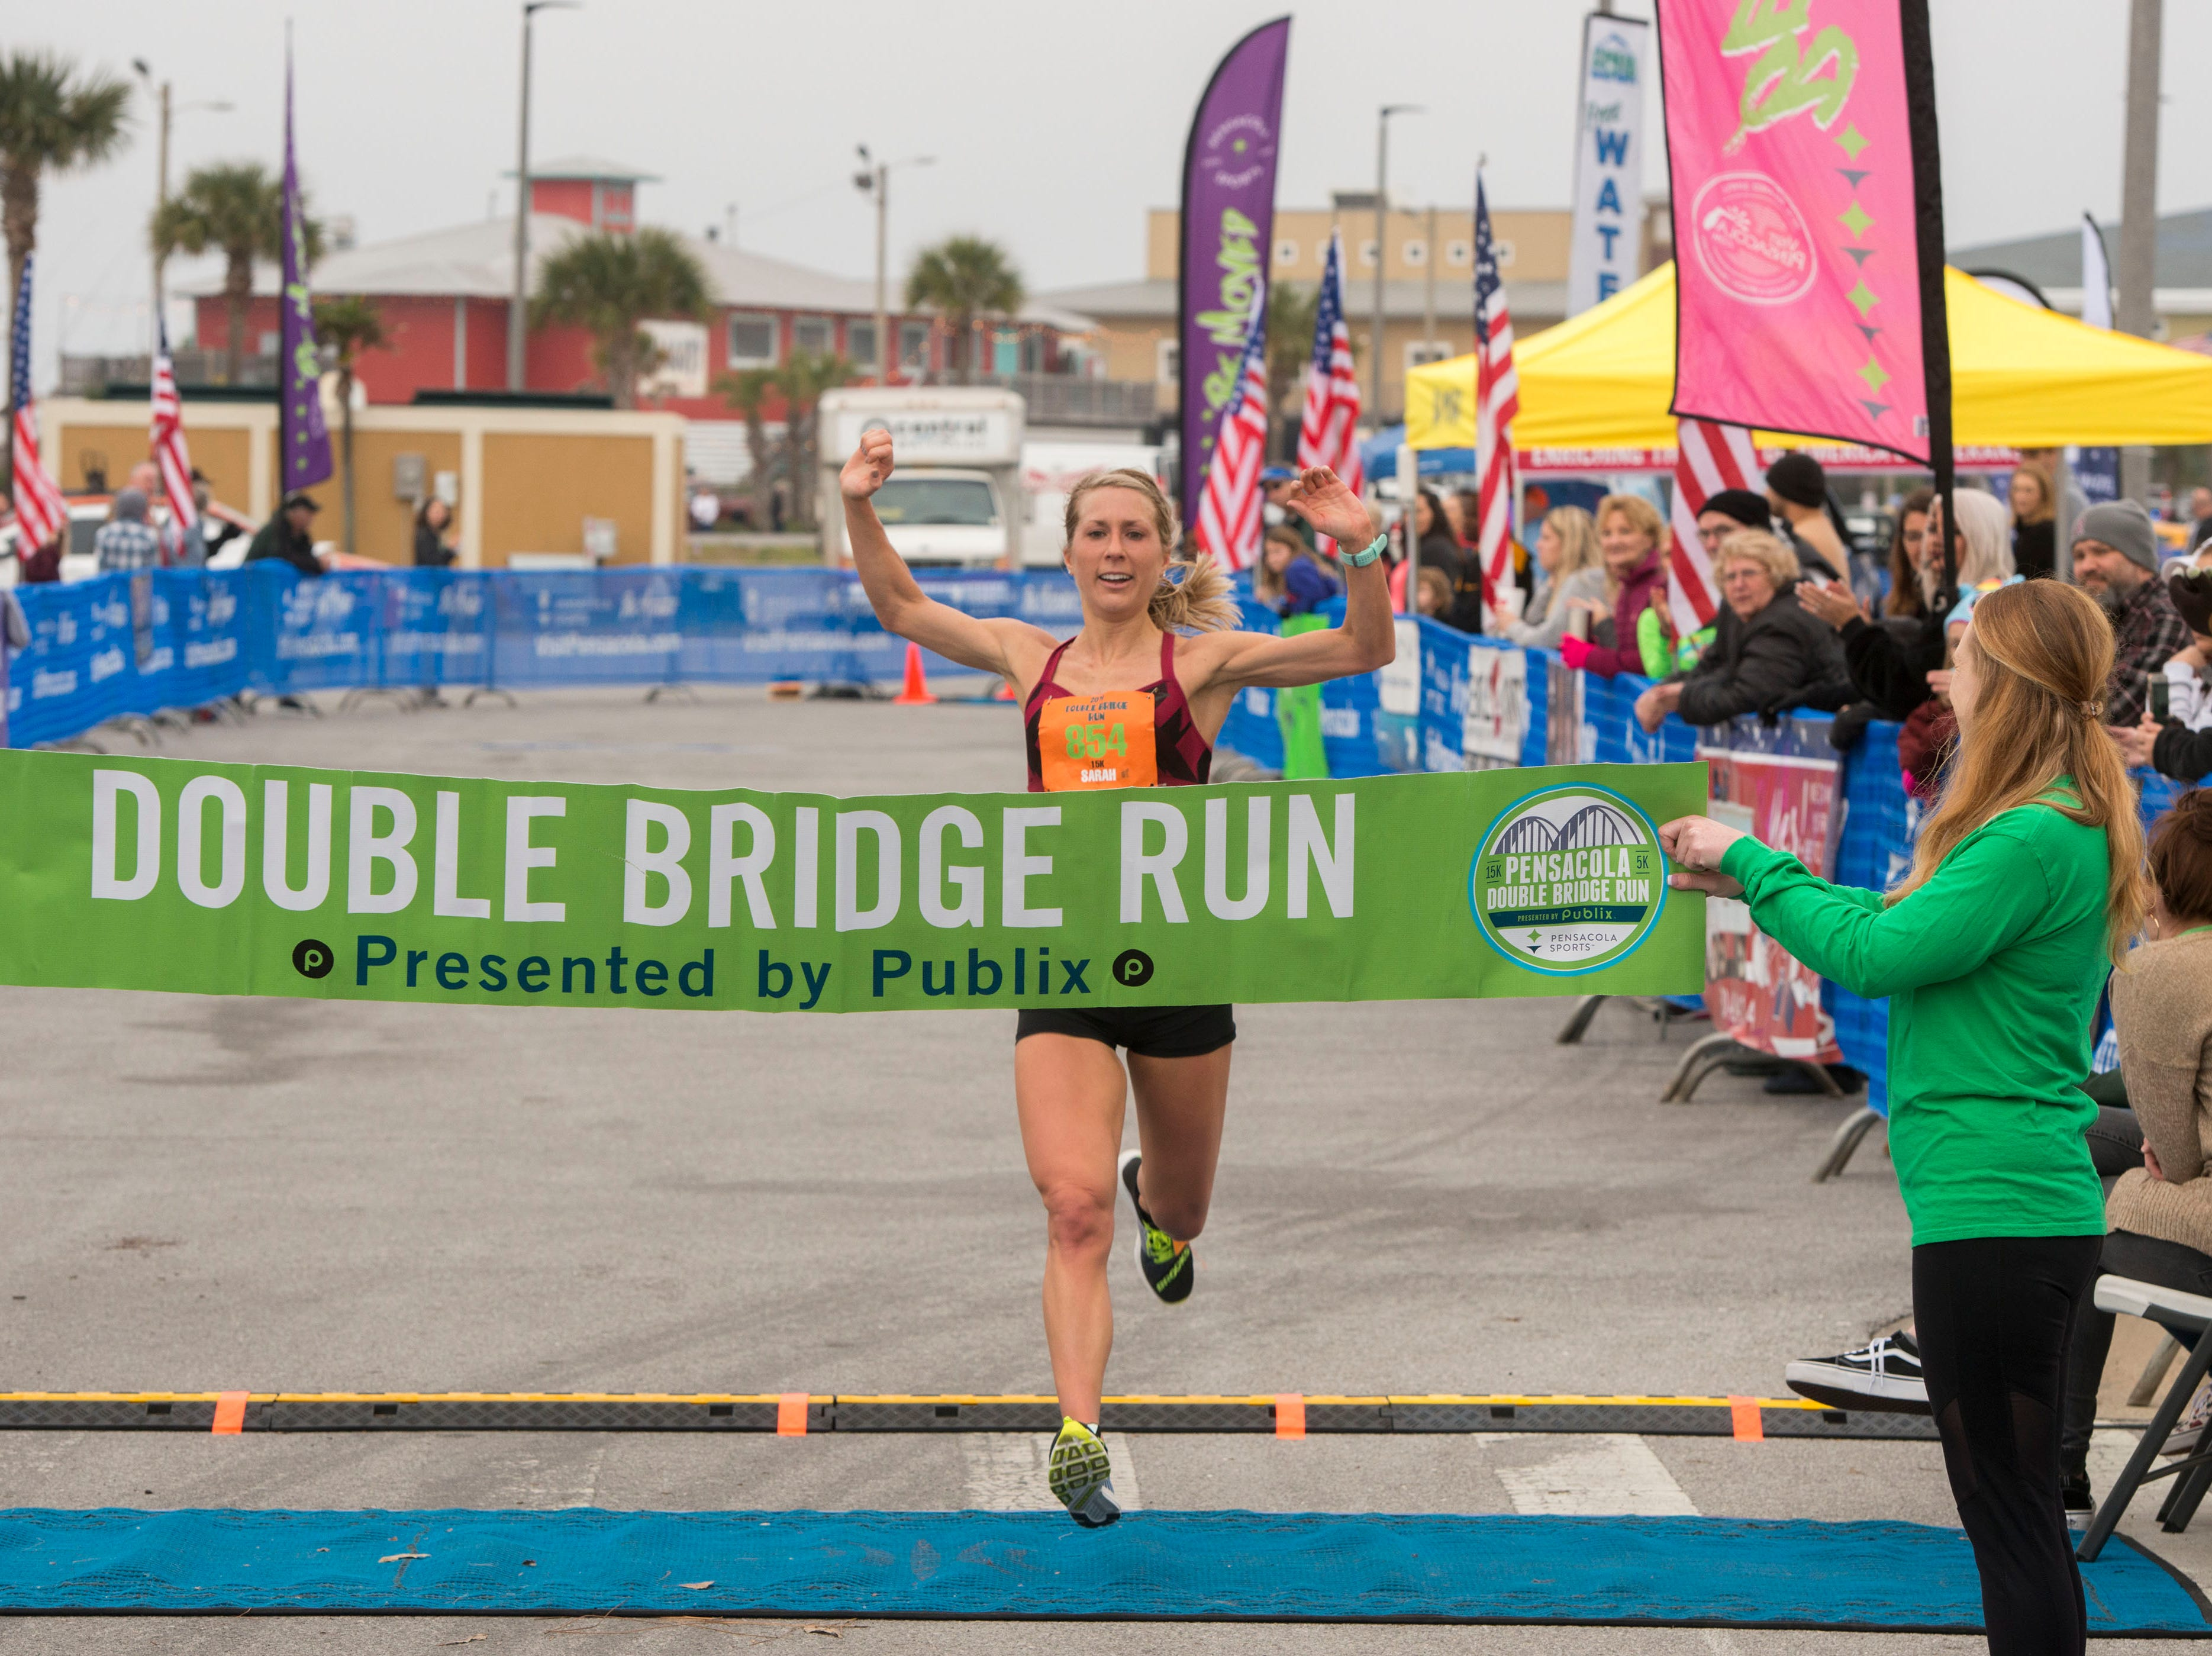 Sarah Harbol corsses the finish line as the first female finisher of the 15 k Saturday, February 2, 2019 during the Pensacola Double Bridge Run presented by Publix. The 15K carries runners over two bridges, across Pensacola Bay and Santa Rosa Sound. It will run from downtown Pensacola with a tour that includes the historic district, and picturesque Bayfront Parkway, a run through Gulf Breeze, and onto Pensacola Beach. The 5K invites both runners and walkers to travel from Gulf Breeze to beautiful Pensacola Beach on Santa Rosa Island and the Gulf Islands Seashore.